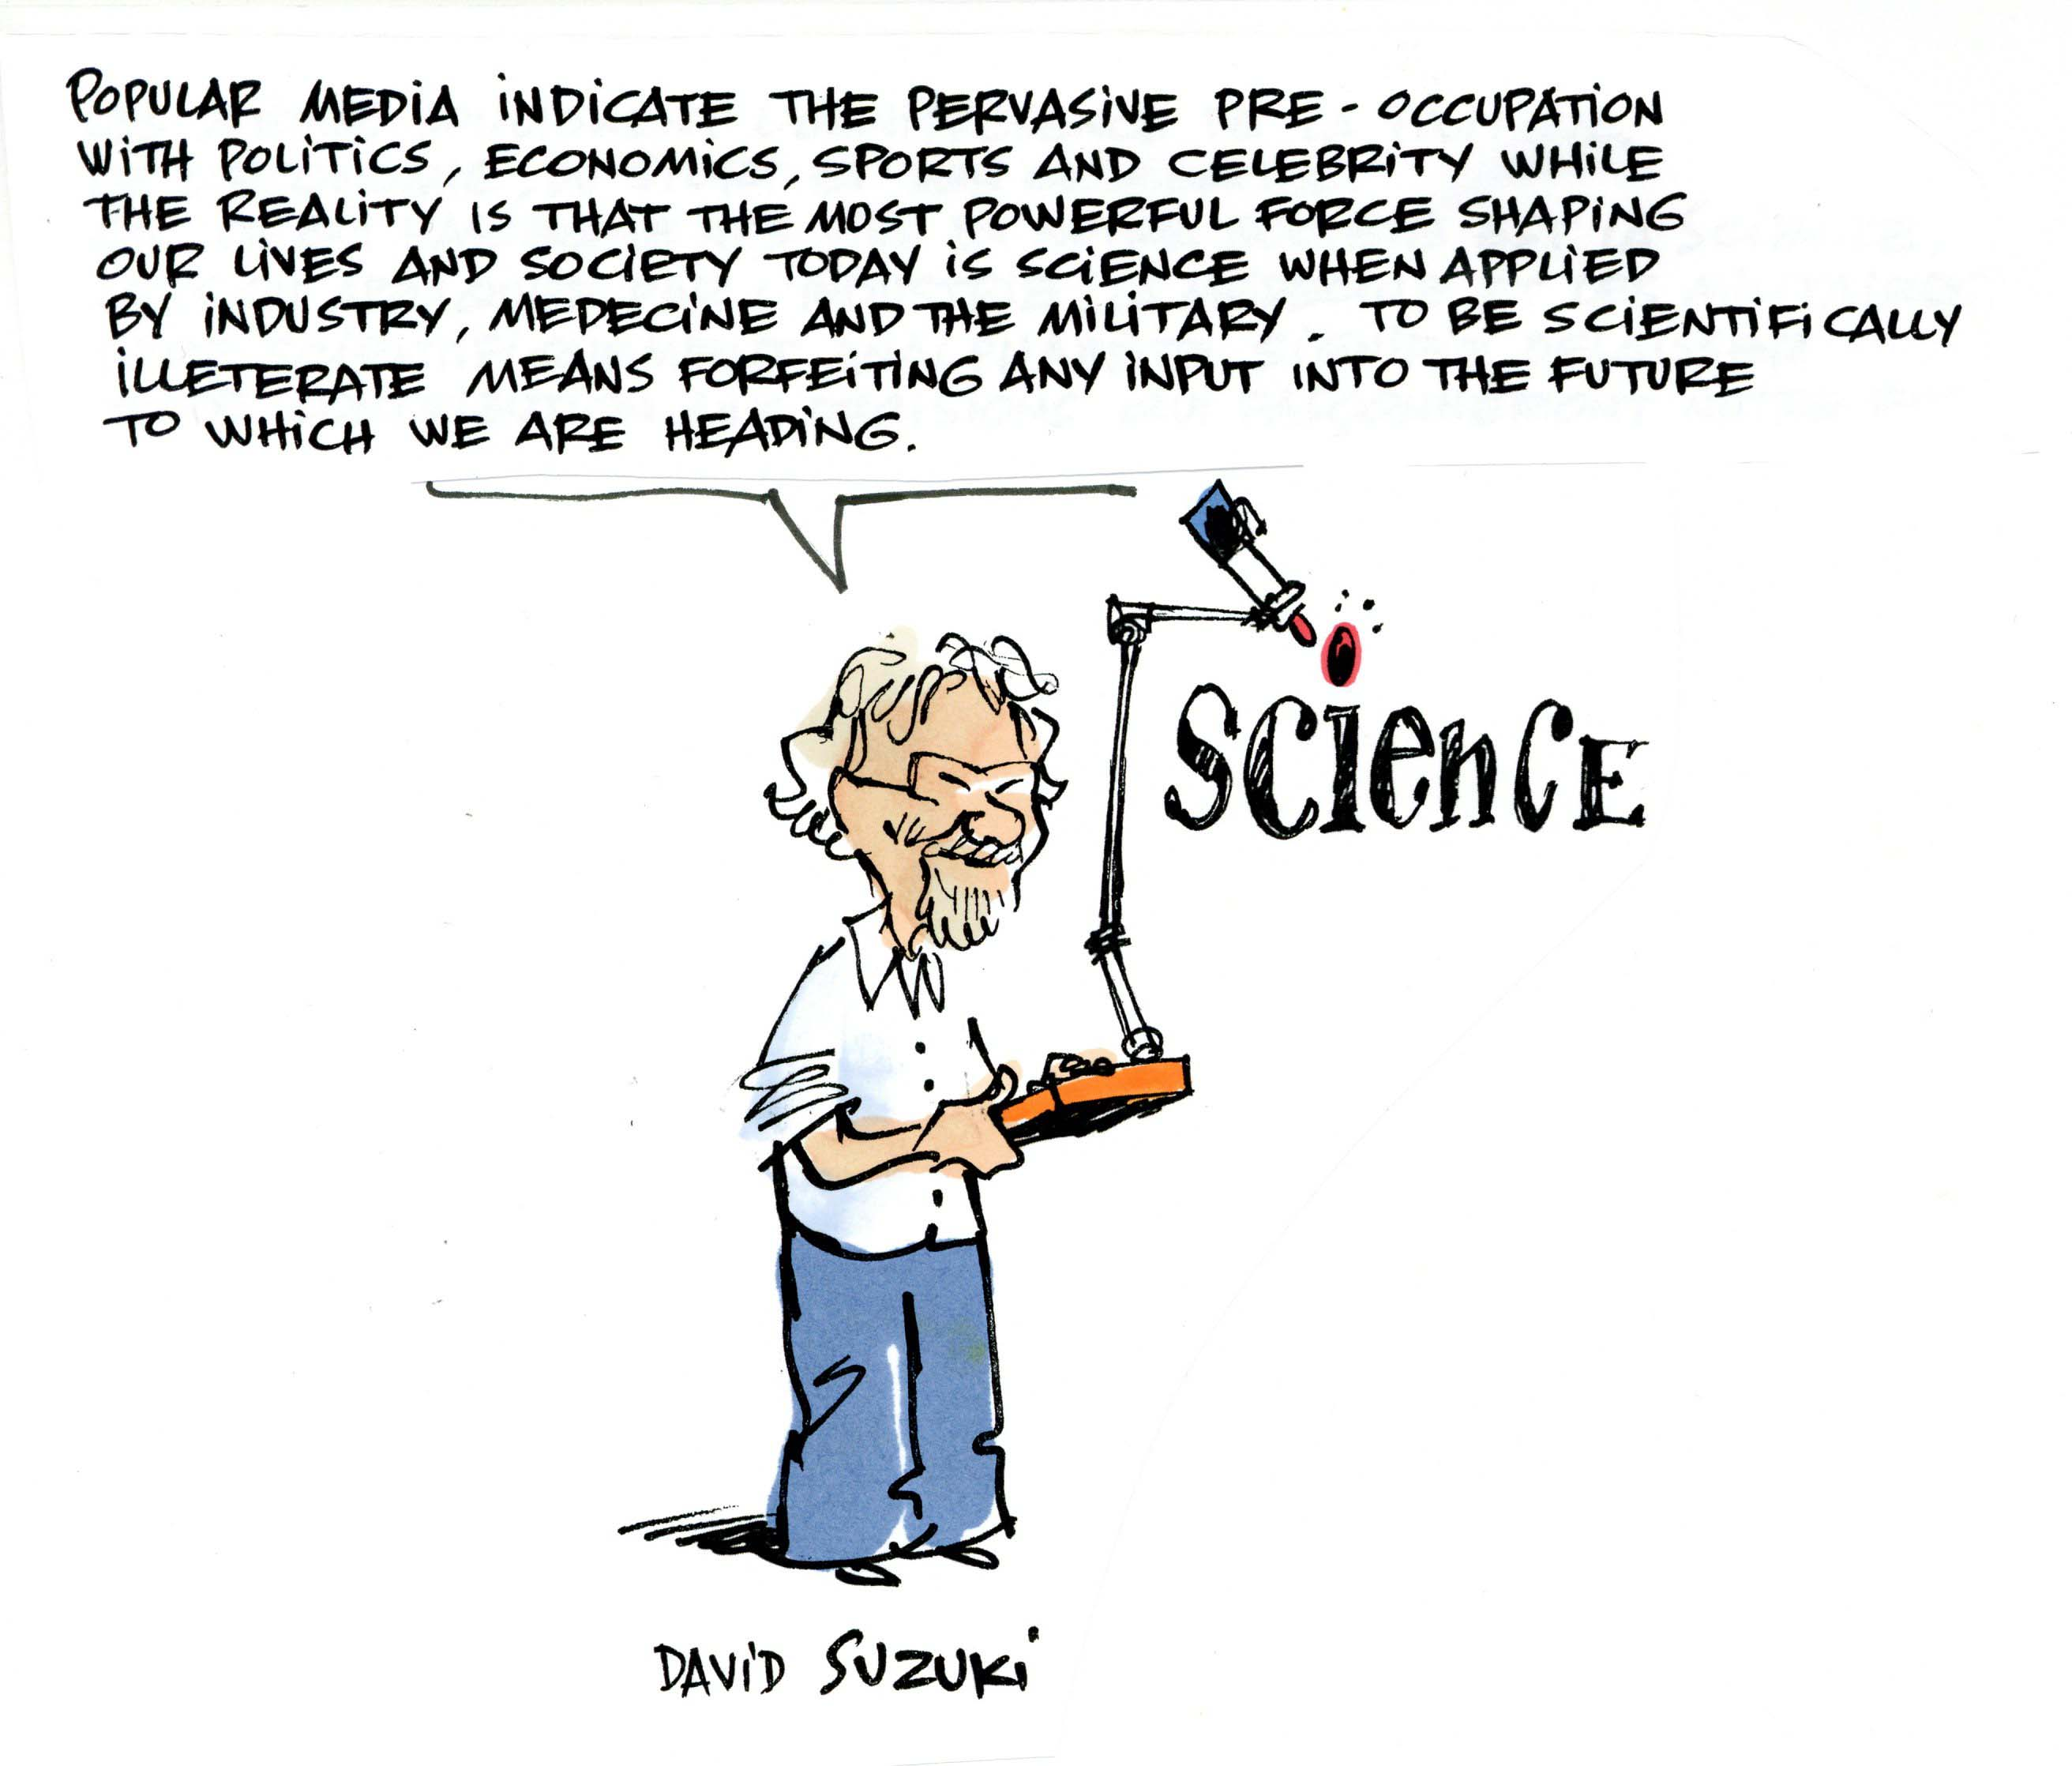 David Suzuki image by Jacques Goldstyn